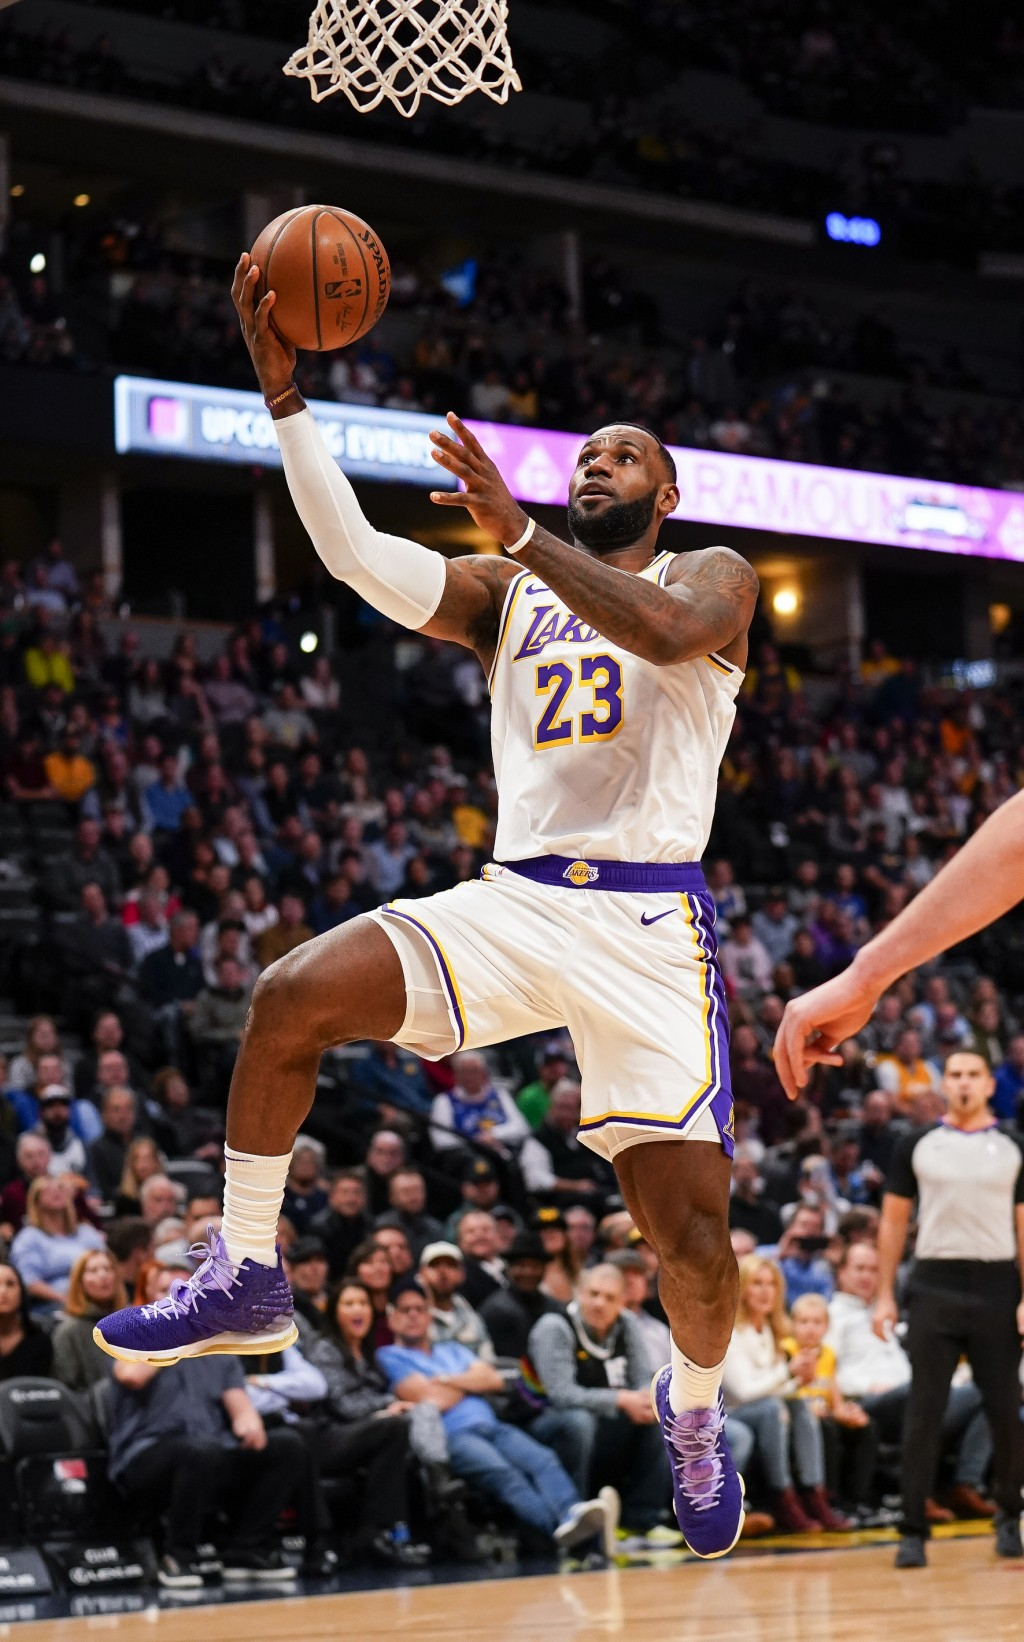 Los Angeles Lakers forward LeBron James goes up for a shot against the Denver Nuggets during the first quarter an NBA basketball game Tuesday, Dec. 3,...